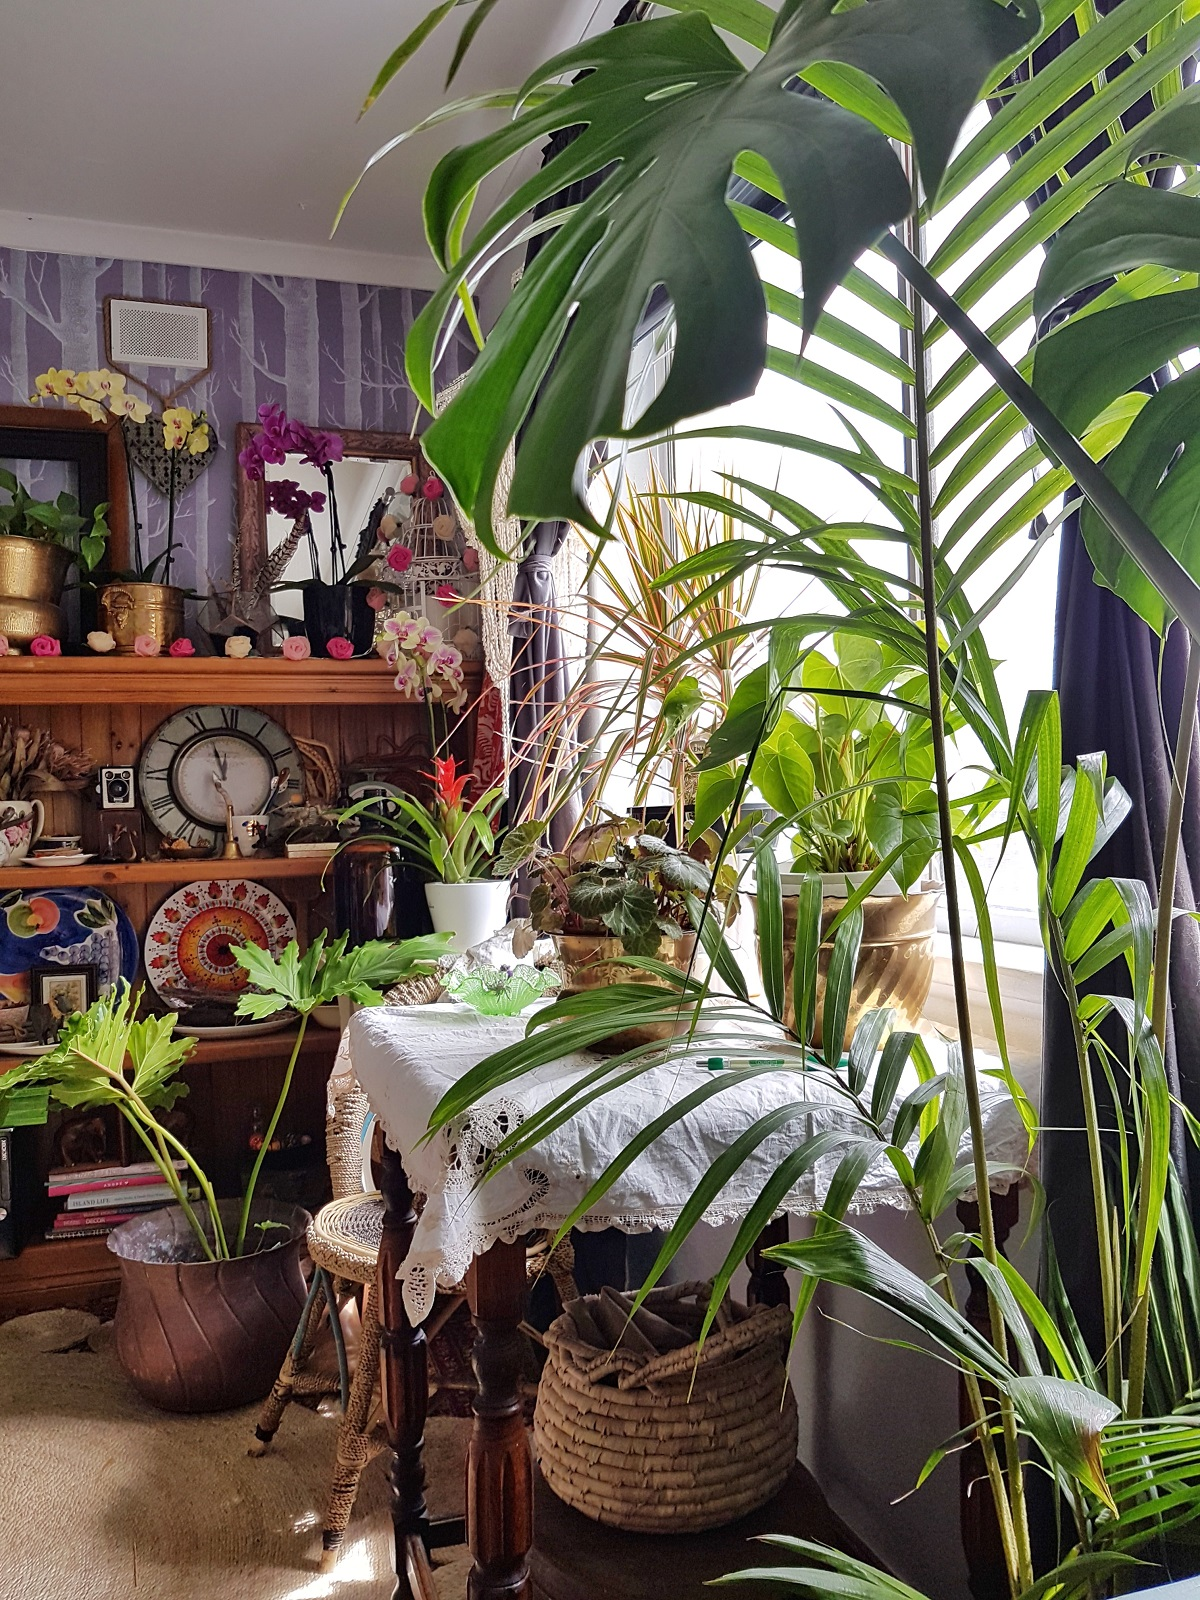 How to care for potted plants indoors and on your deck including strong of pearls, monstera and fiddle leaf fig